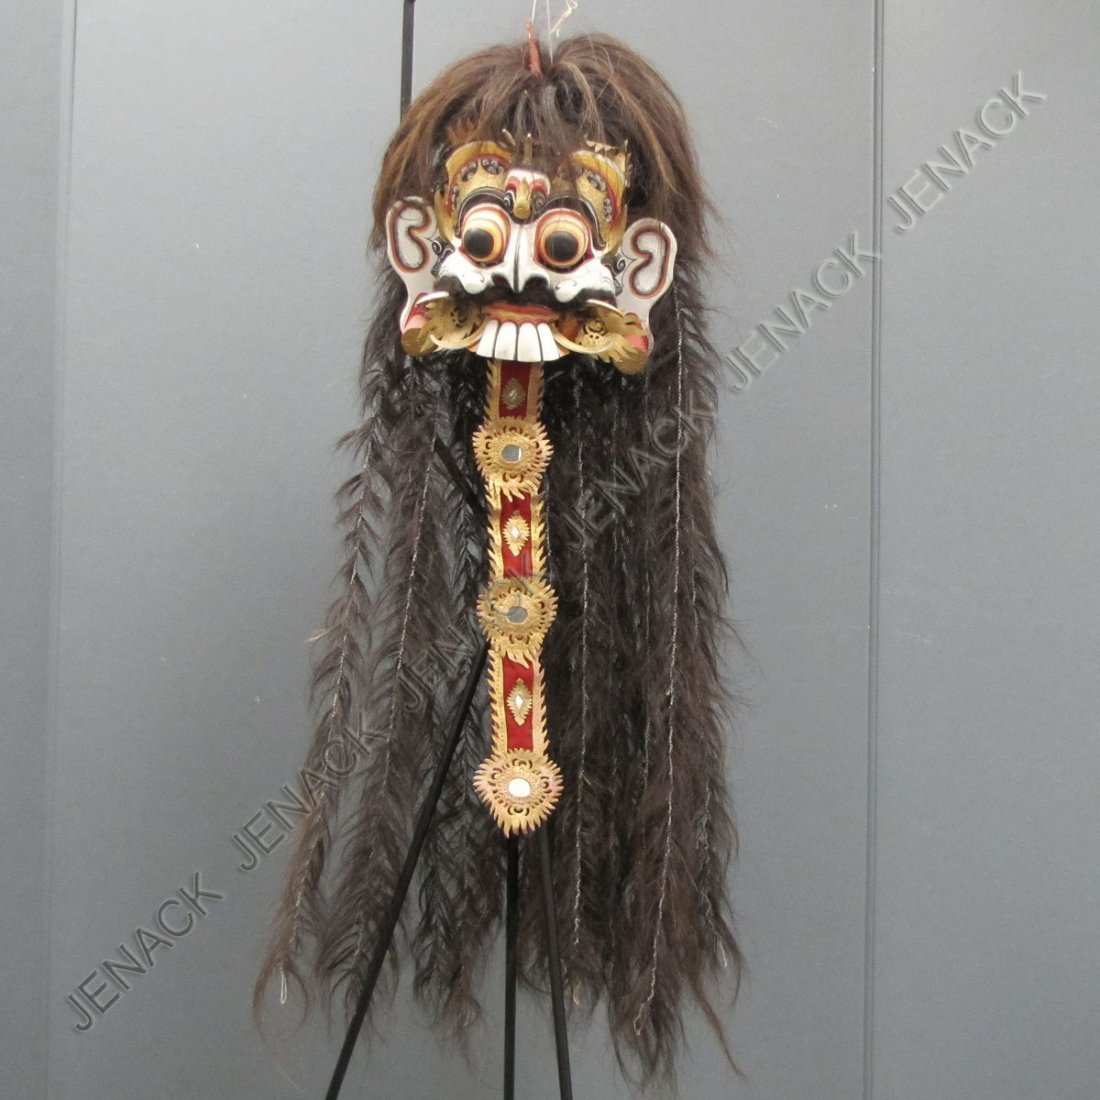 15: BALINESE CARVED AND POLYCHROMED WIG AND MASK